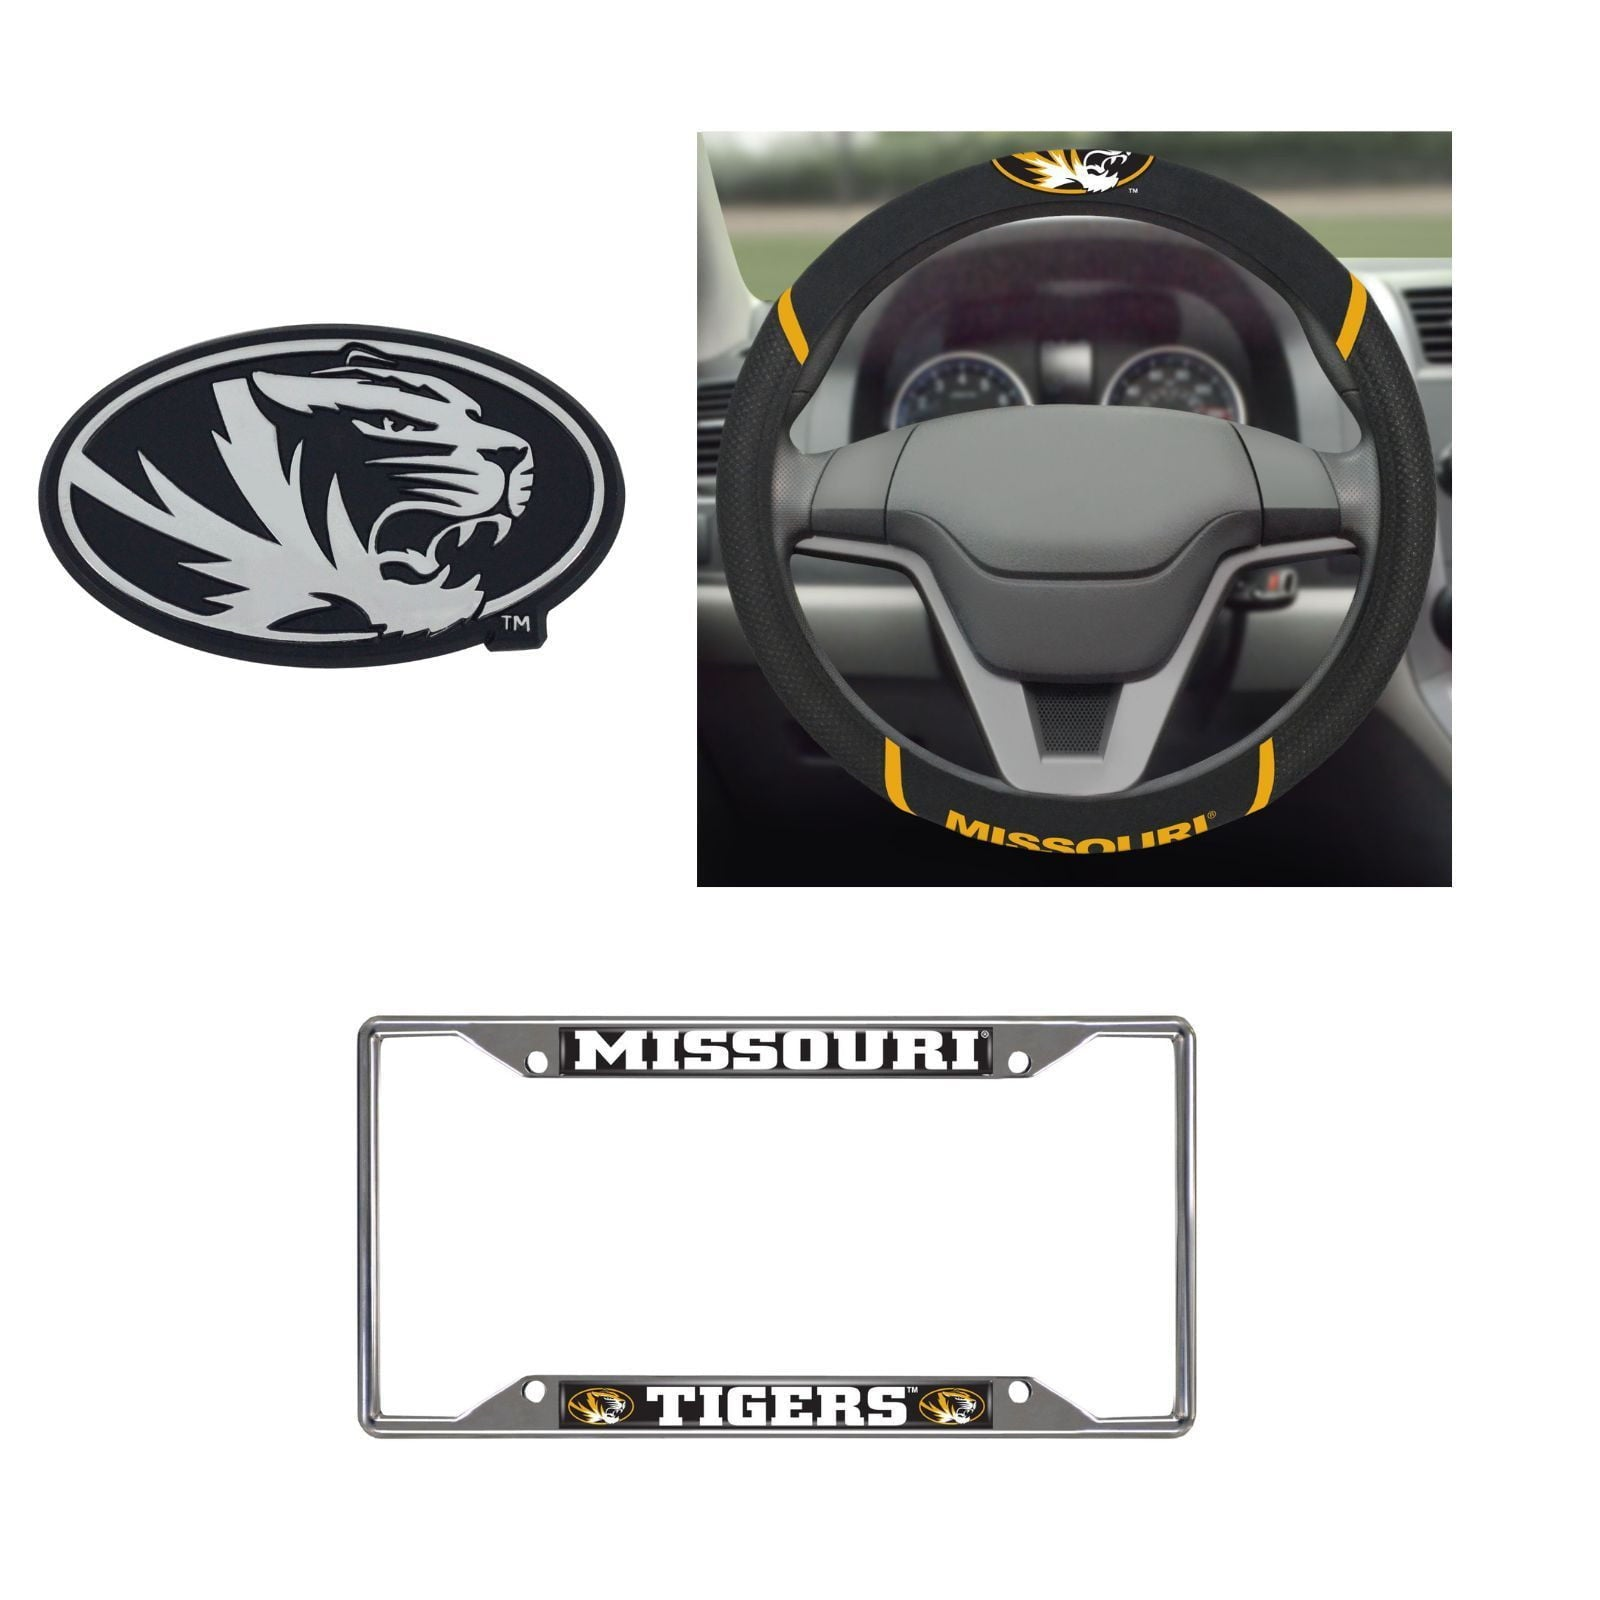 Missouri Tigers Steering Wheel Cover, License Plate Frame, 3D Chrome Emblem